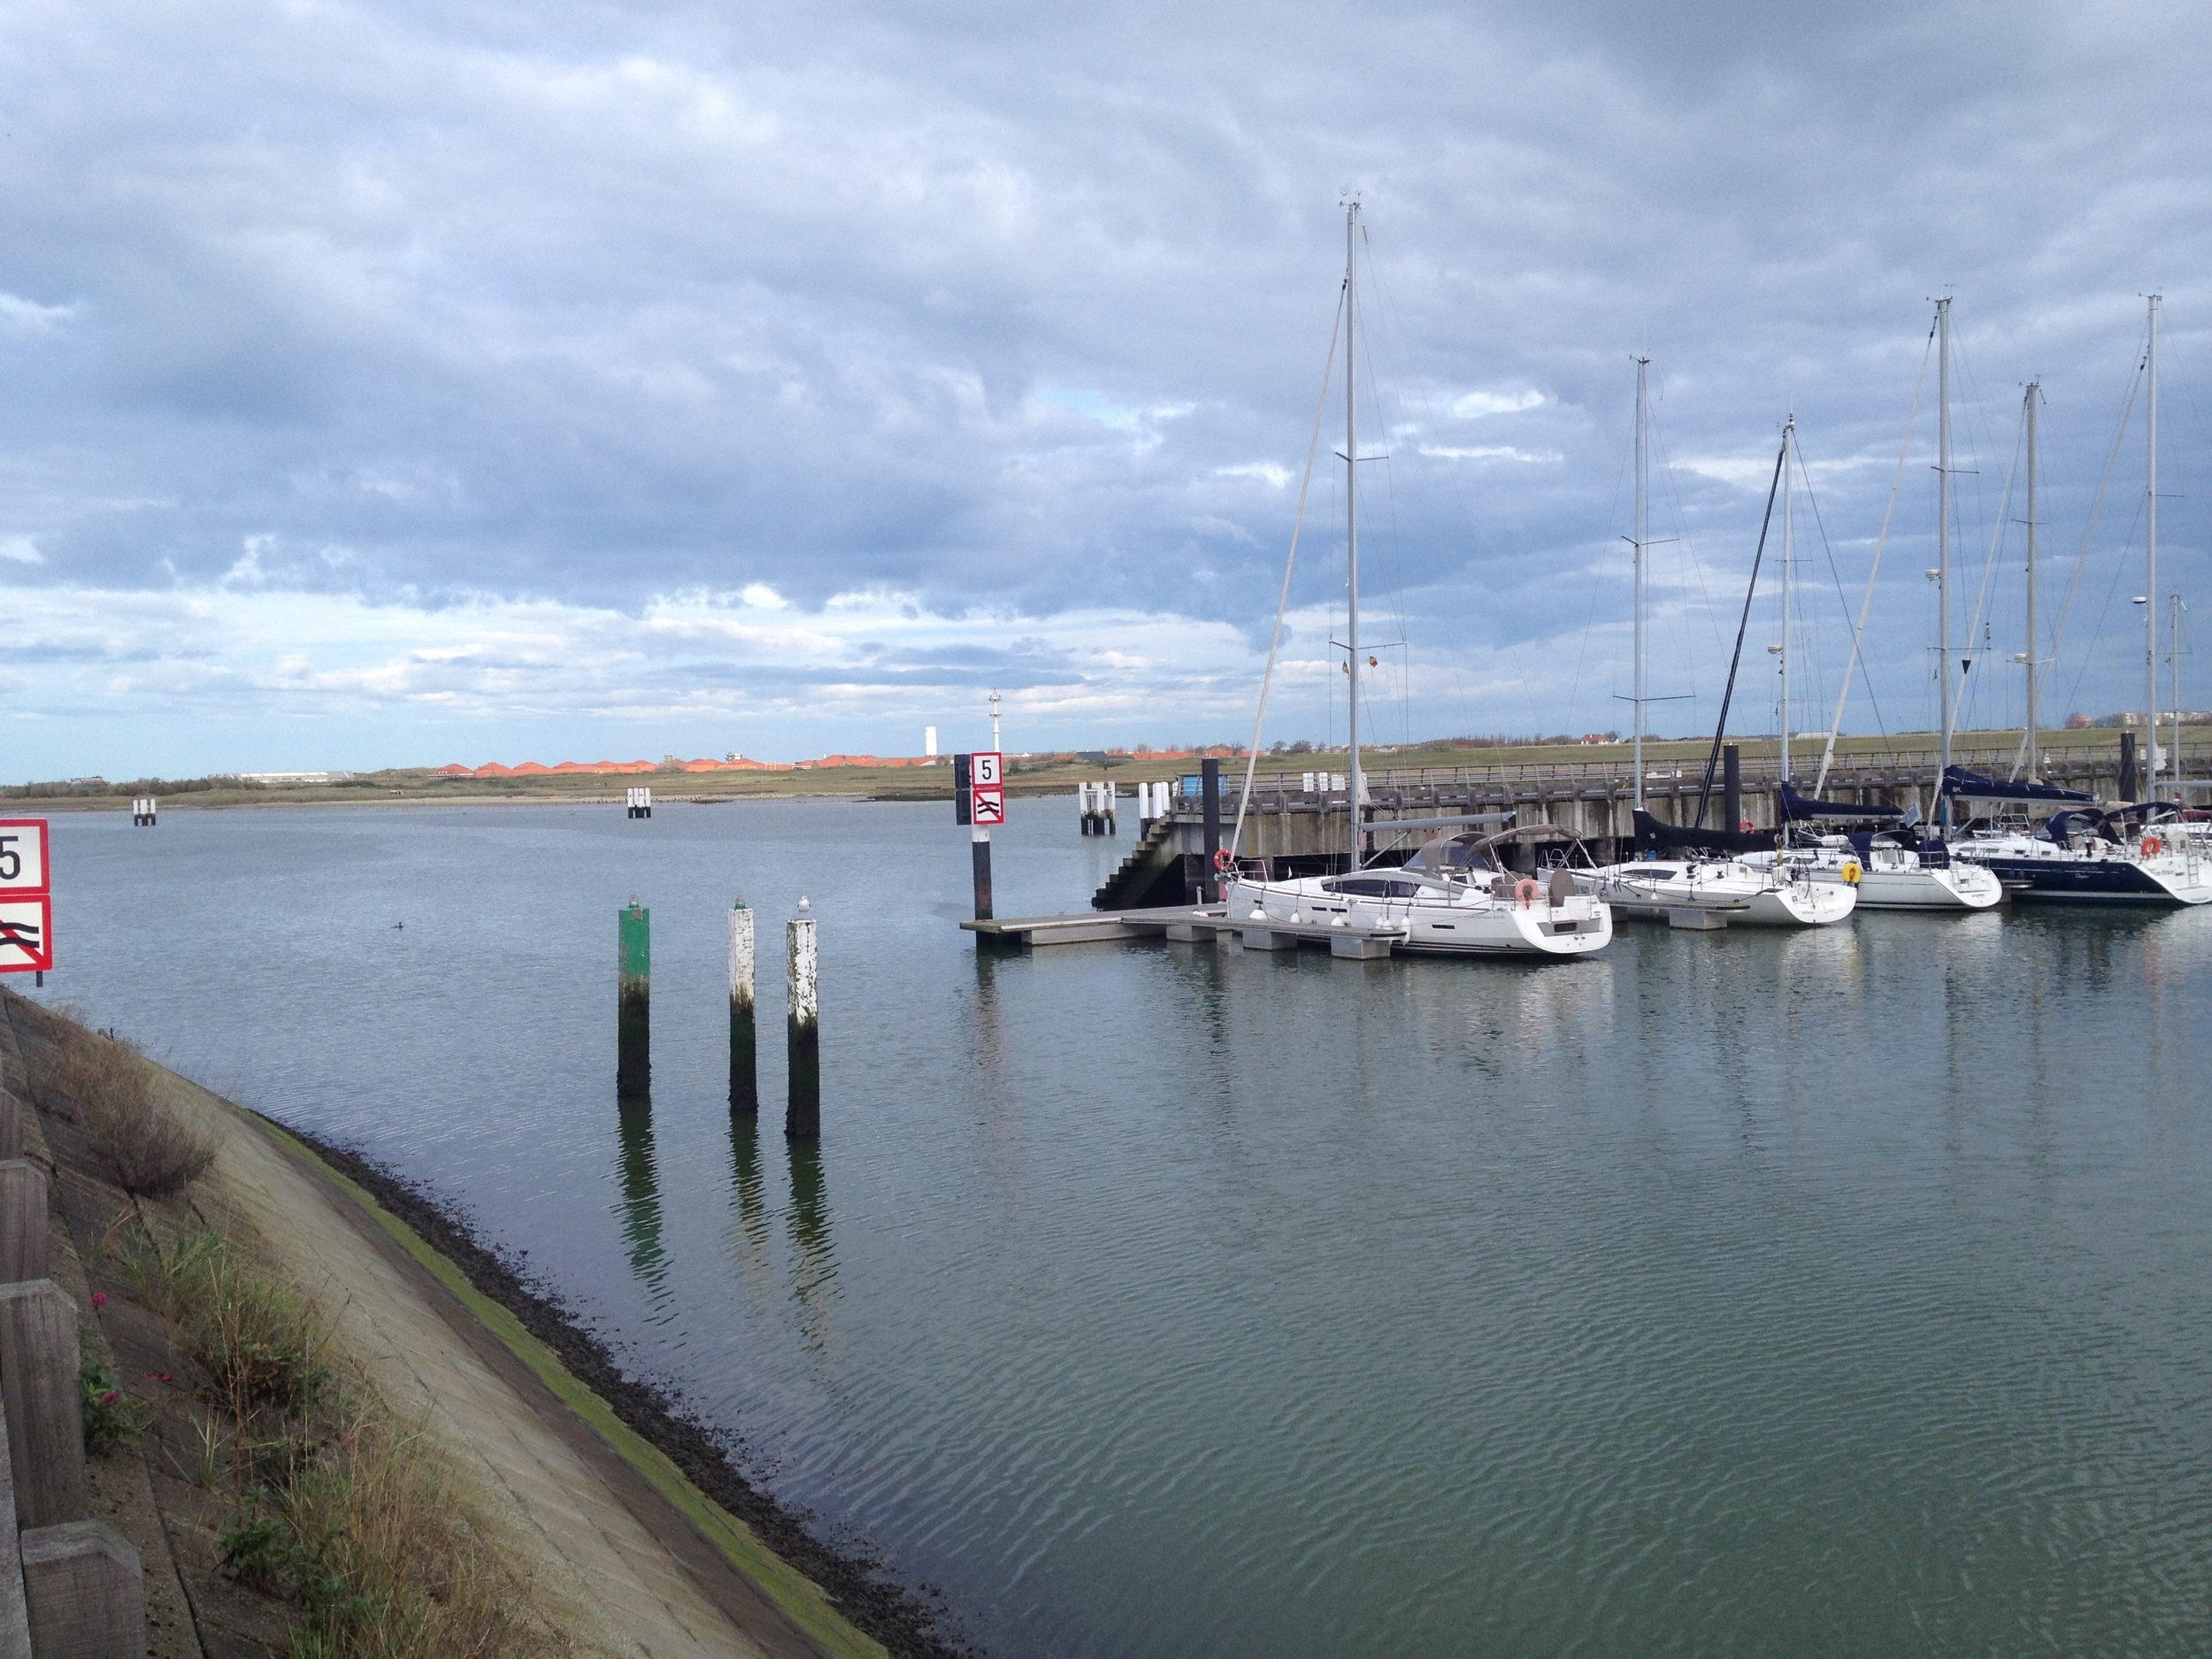 Entrance at high tide to KYCN marina in Nieuwpoort, Belgium